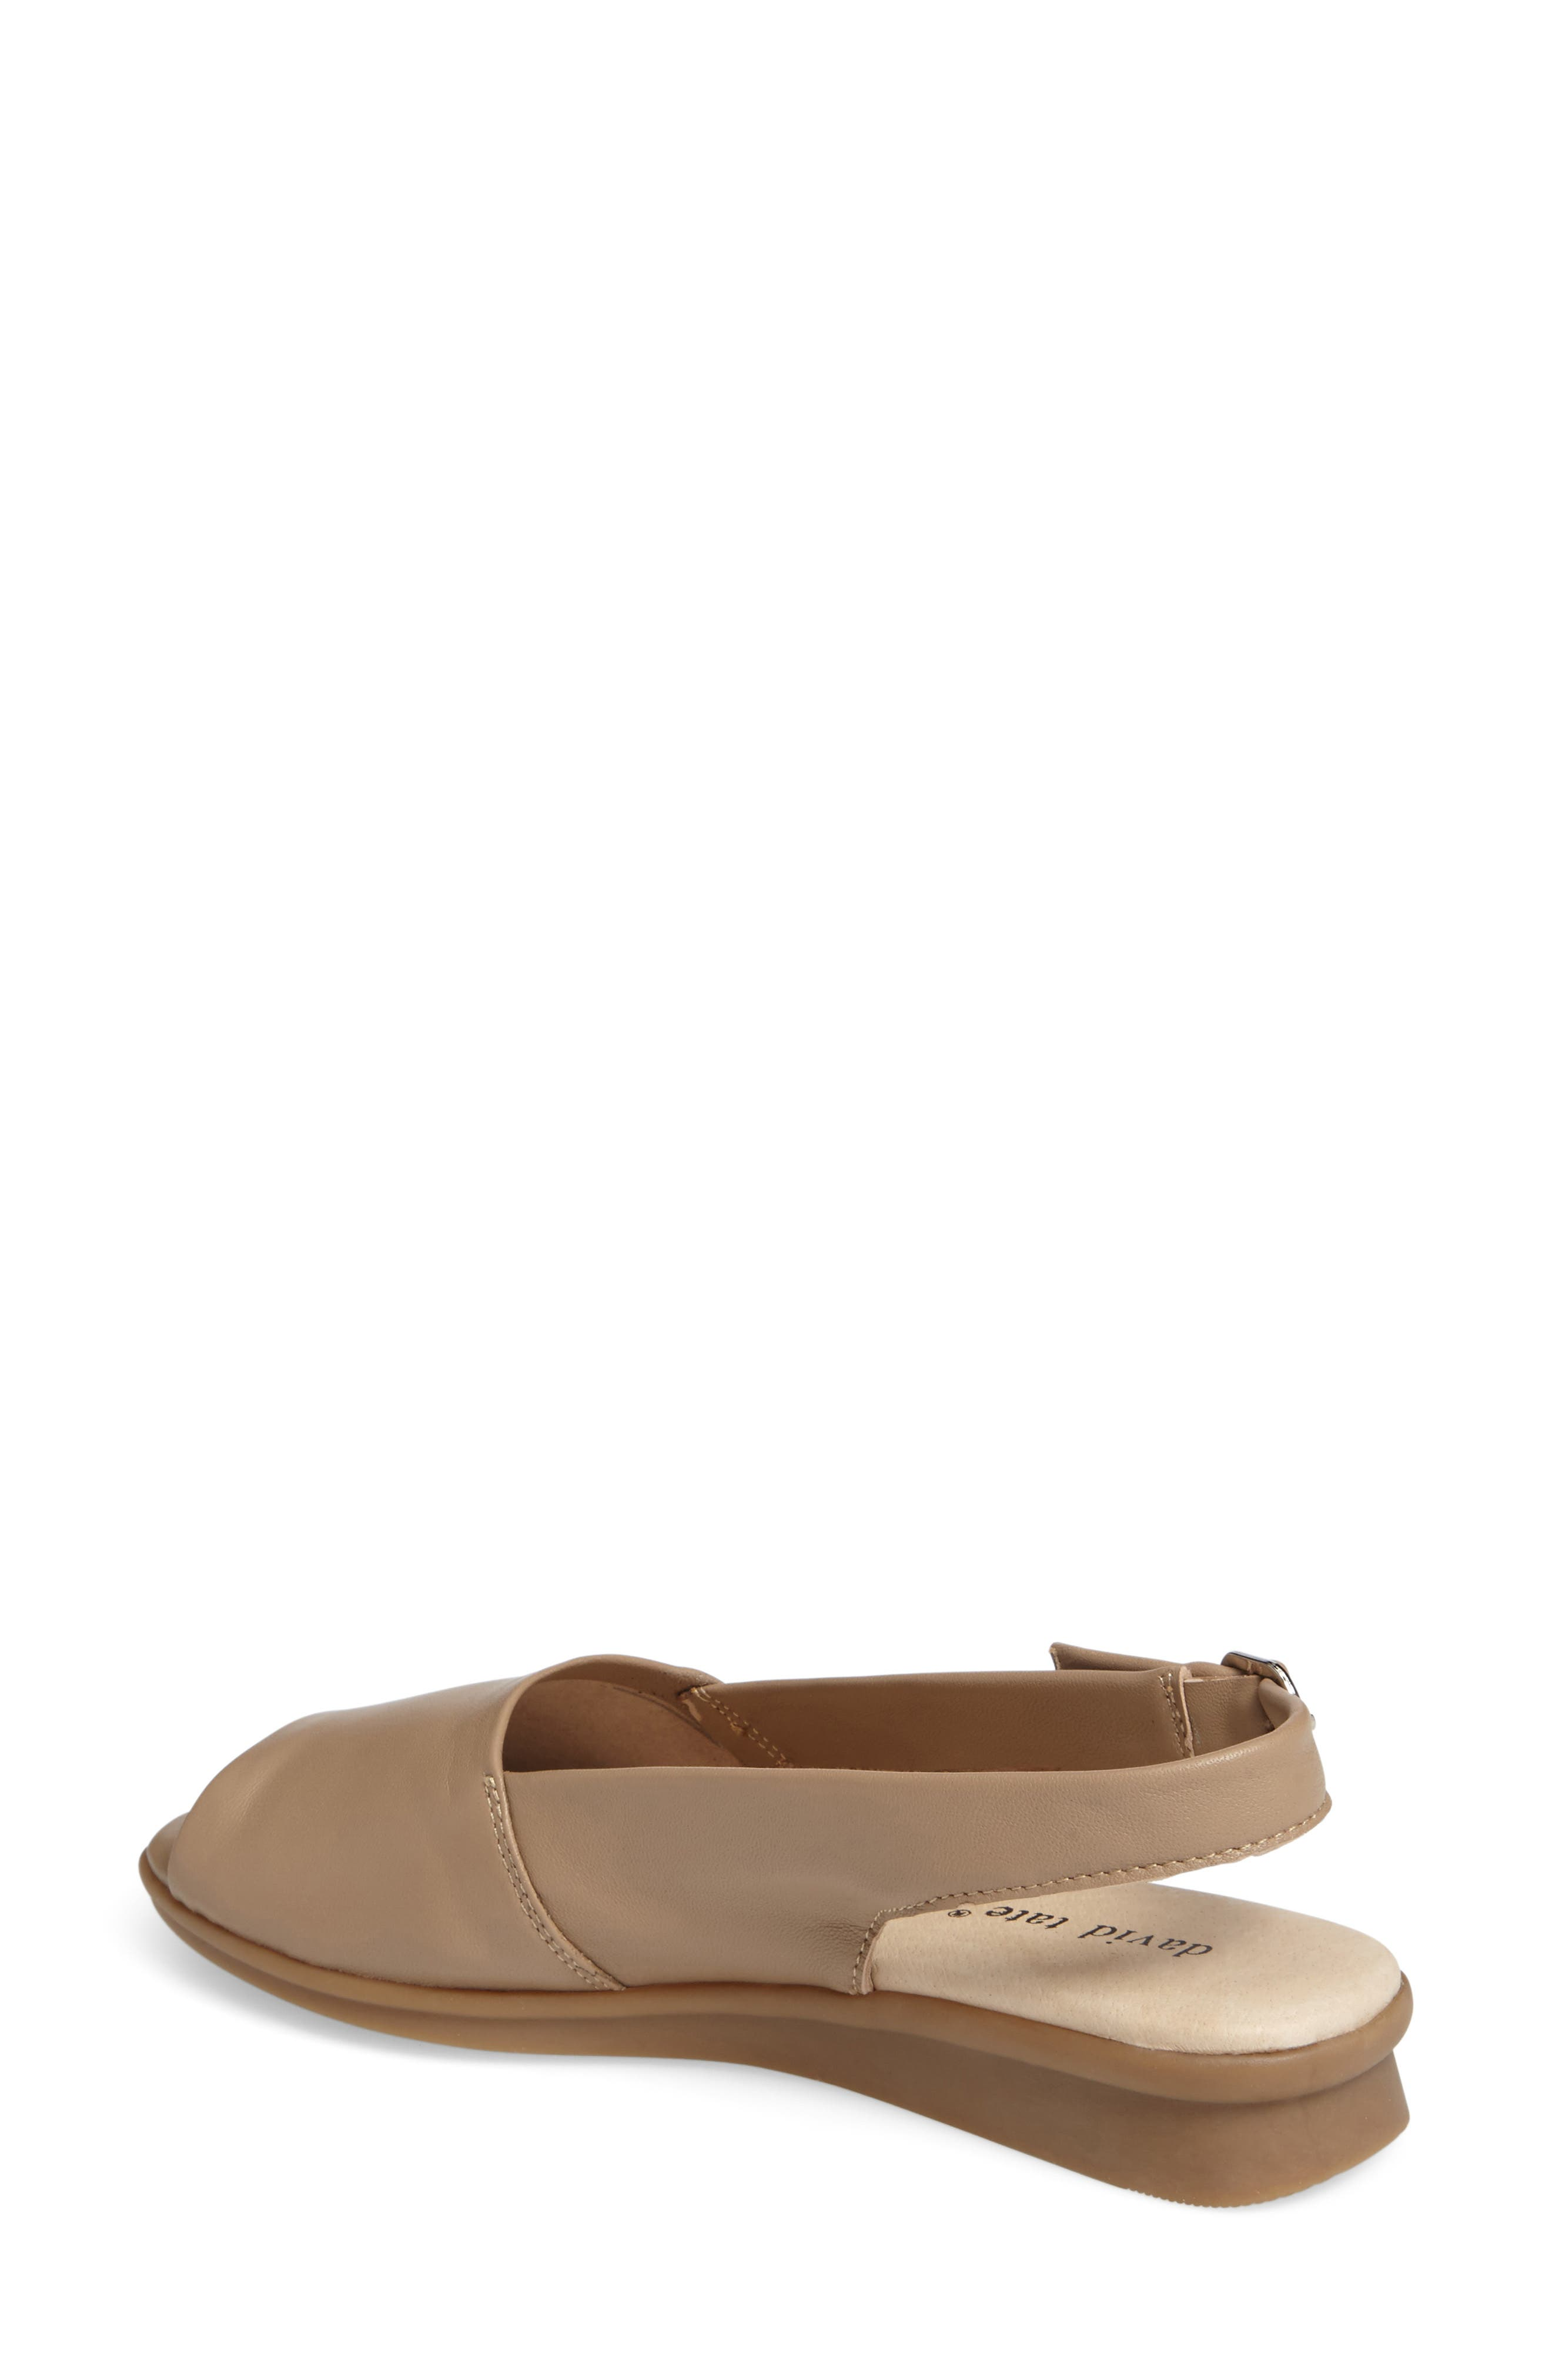 Norma Slingback Sandal,                             Alternate thumbnail 2, color,                             Camel Leather